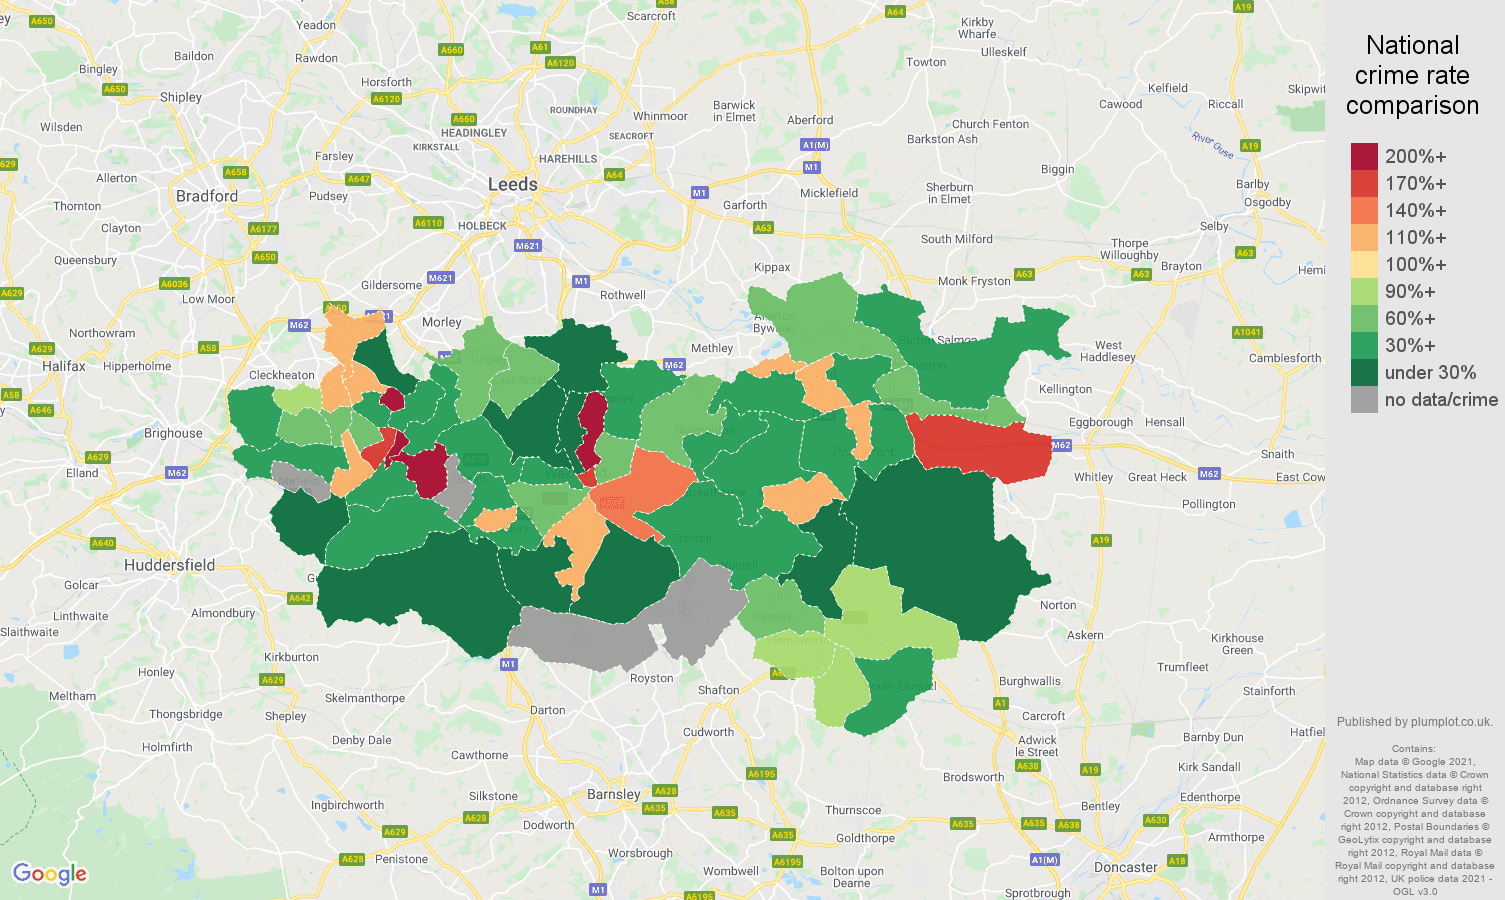 Wakefield robbery crime rate comparison map